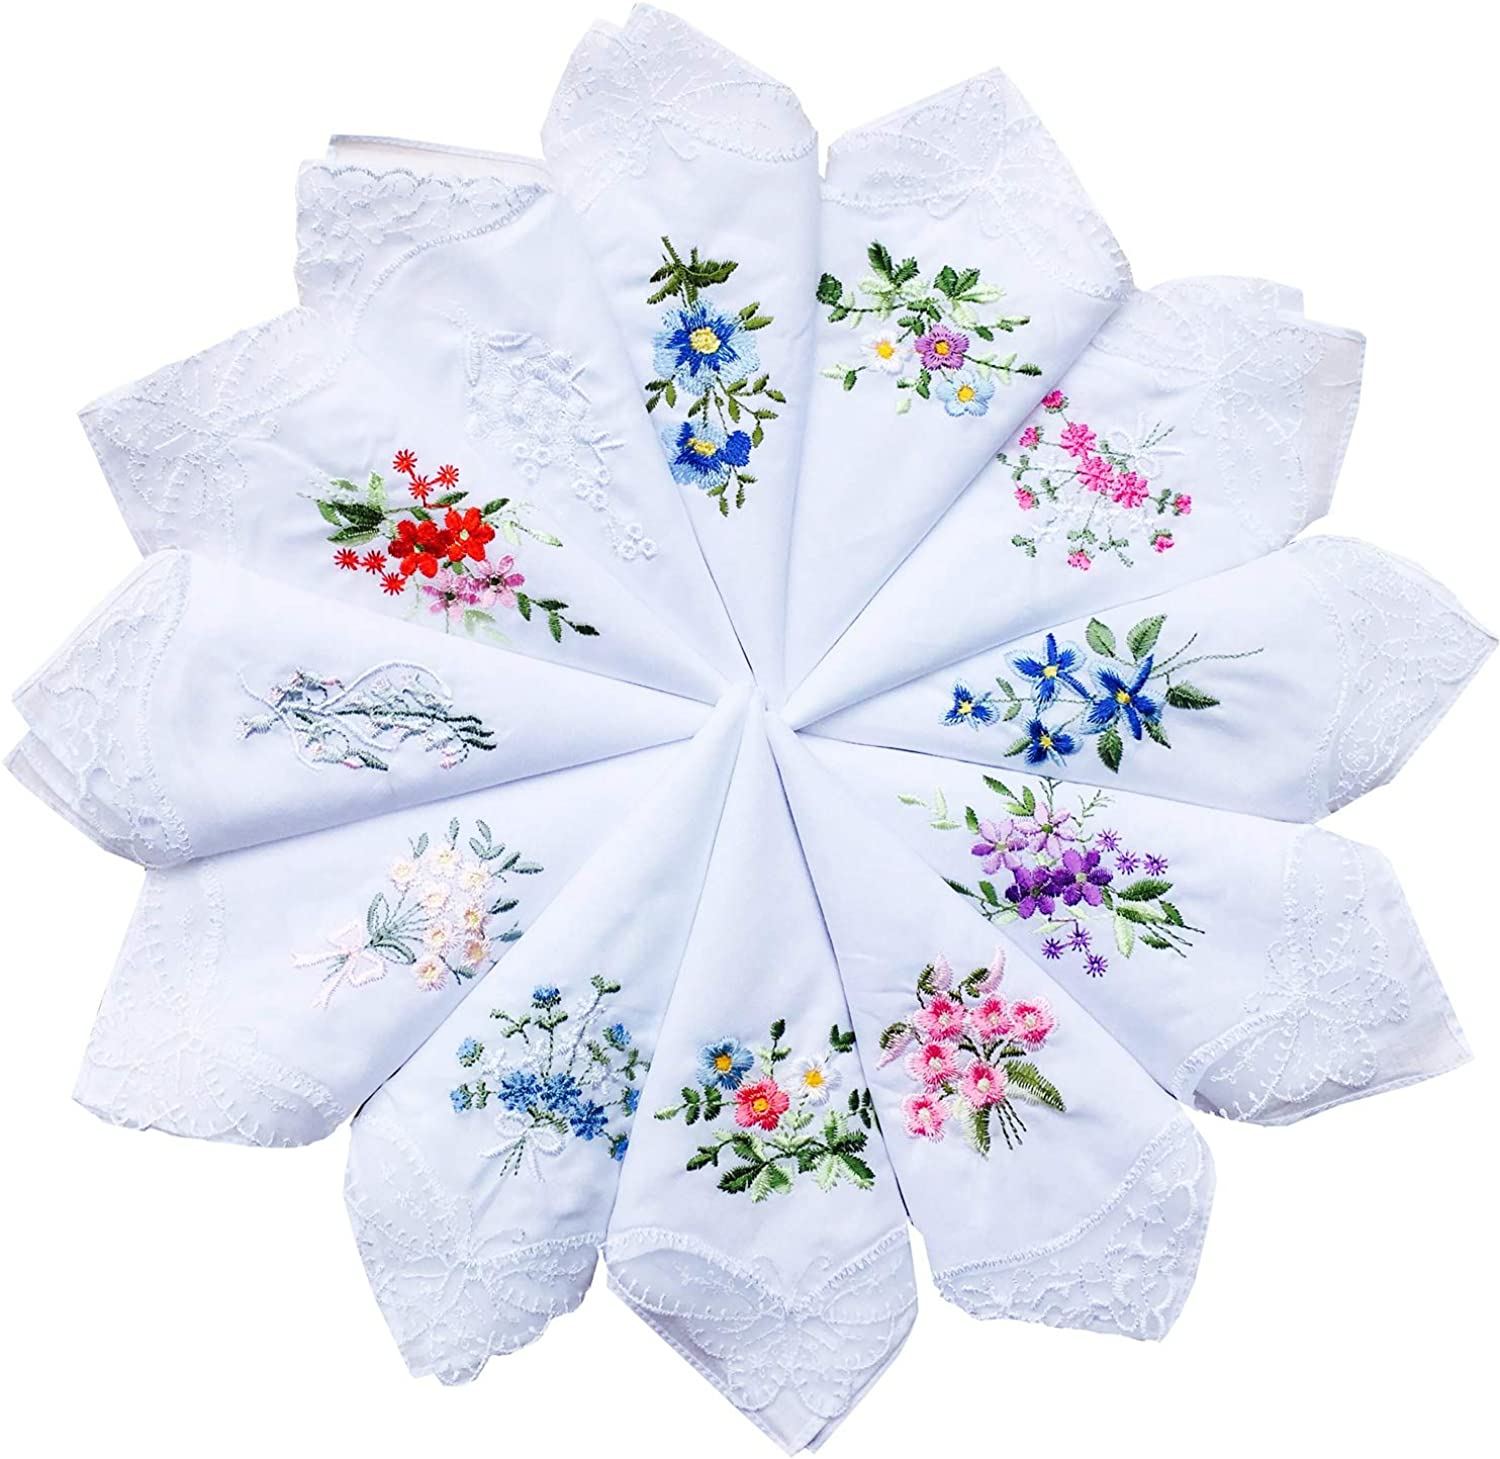 One Size Pack Of 3 Lavender//White Womens//Ladies Cotton Handkerchiefs With Embroidered Flowers